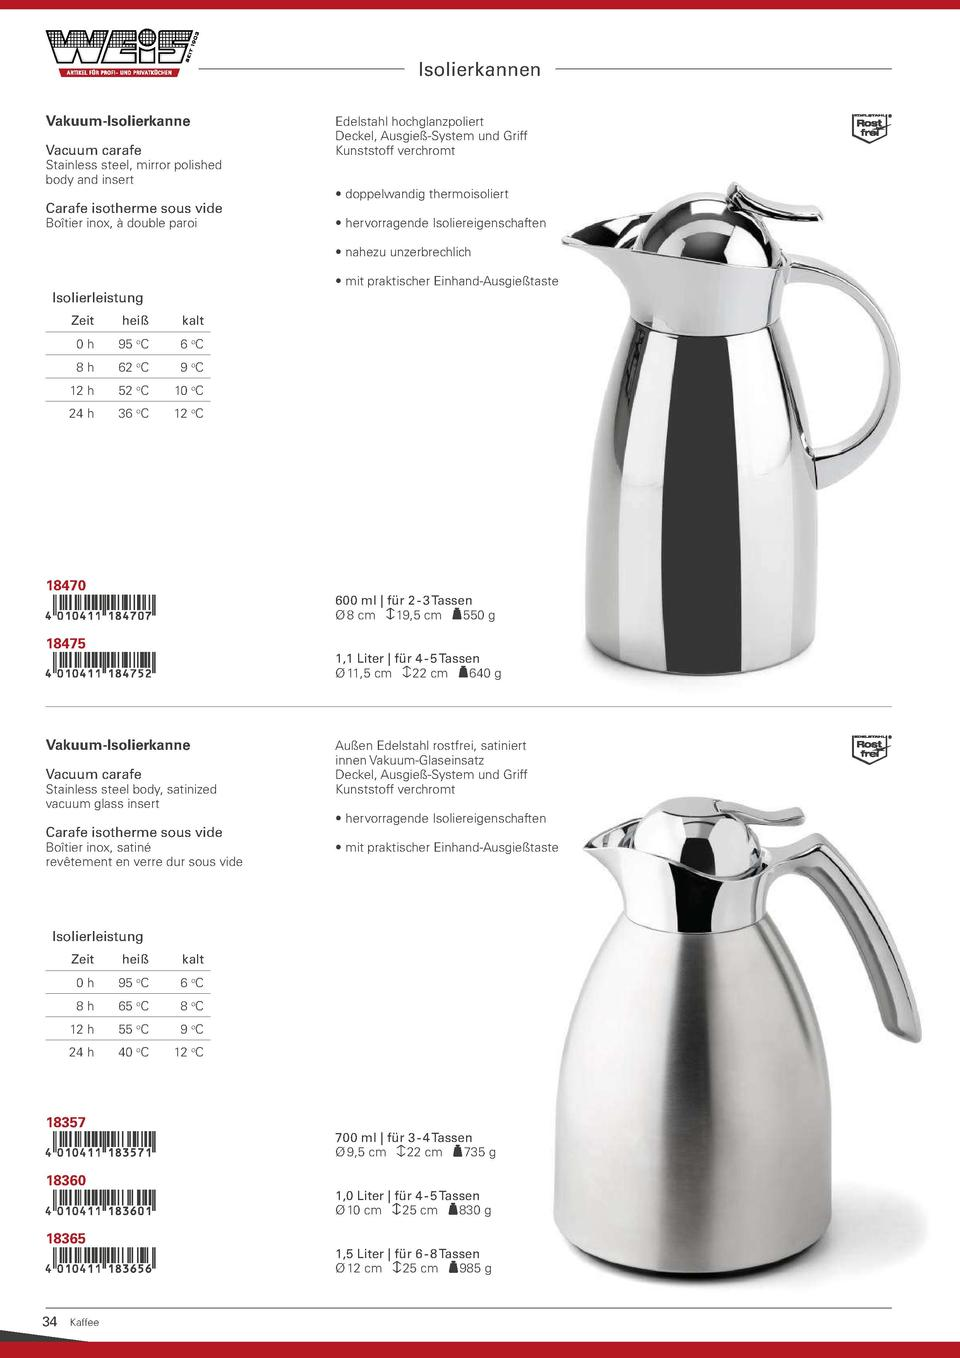 Isolierkannen Vakuum-Isolierkanne Vacuum carafe  Stainless steel, mirror polished body and insert  Carafe isotherme sous v...